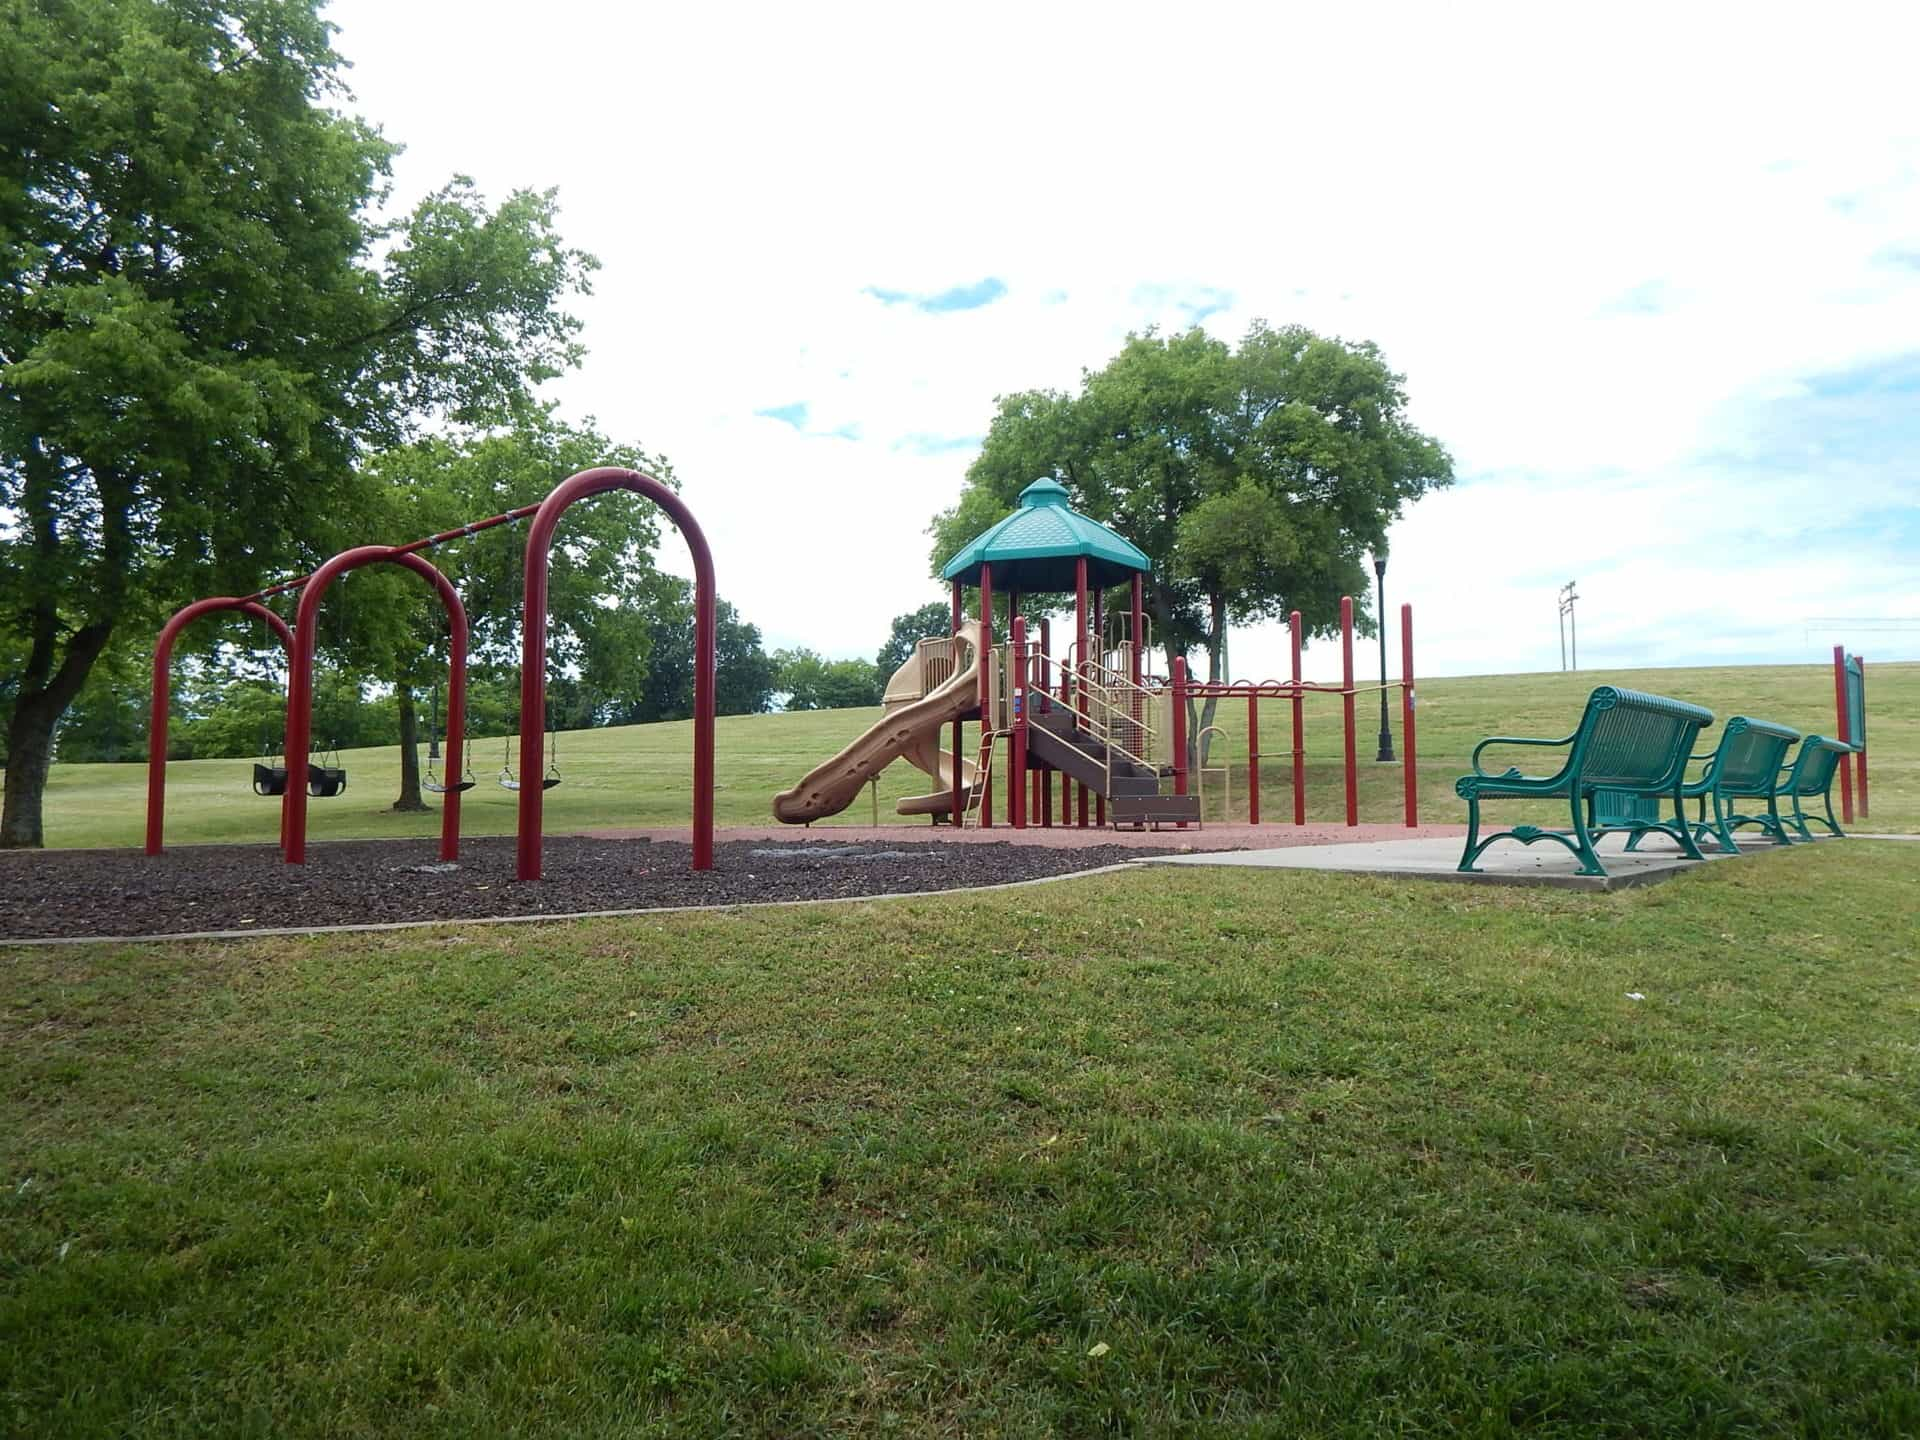 South Inglewood Park and Community Center - second playground